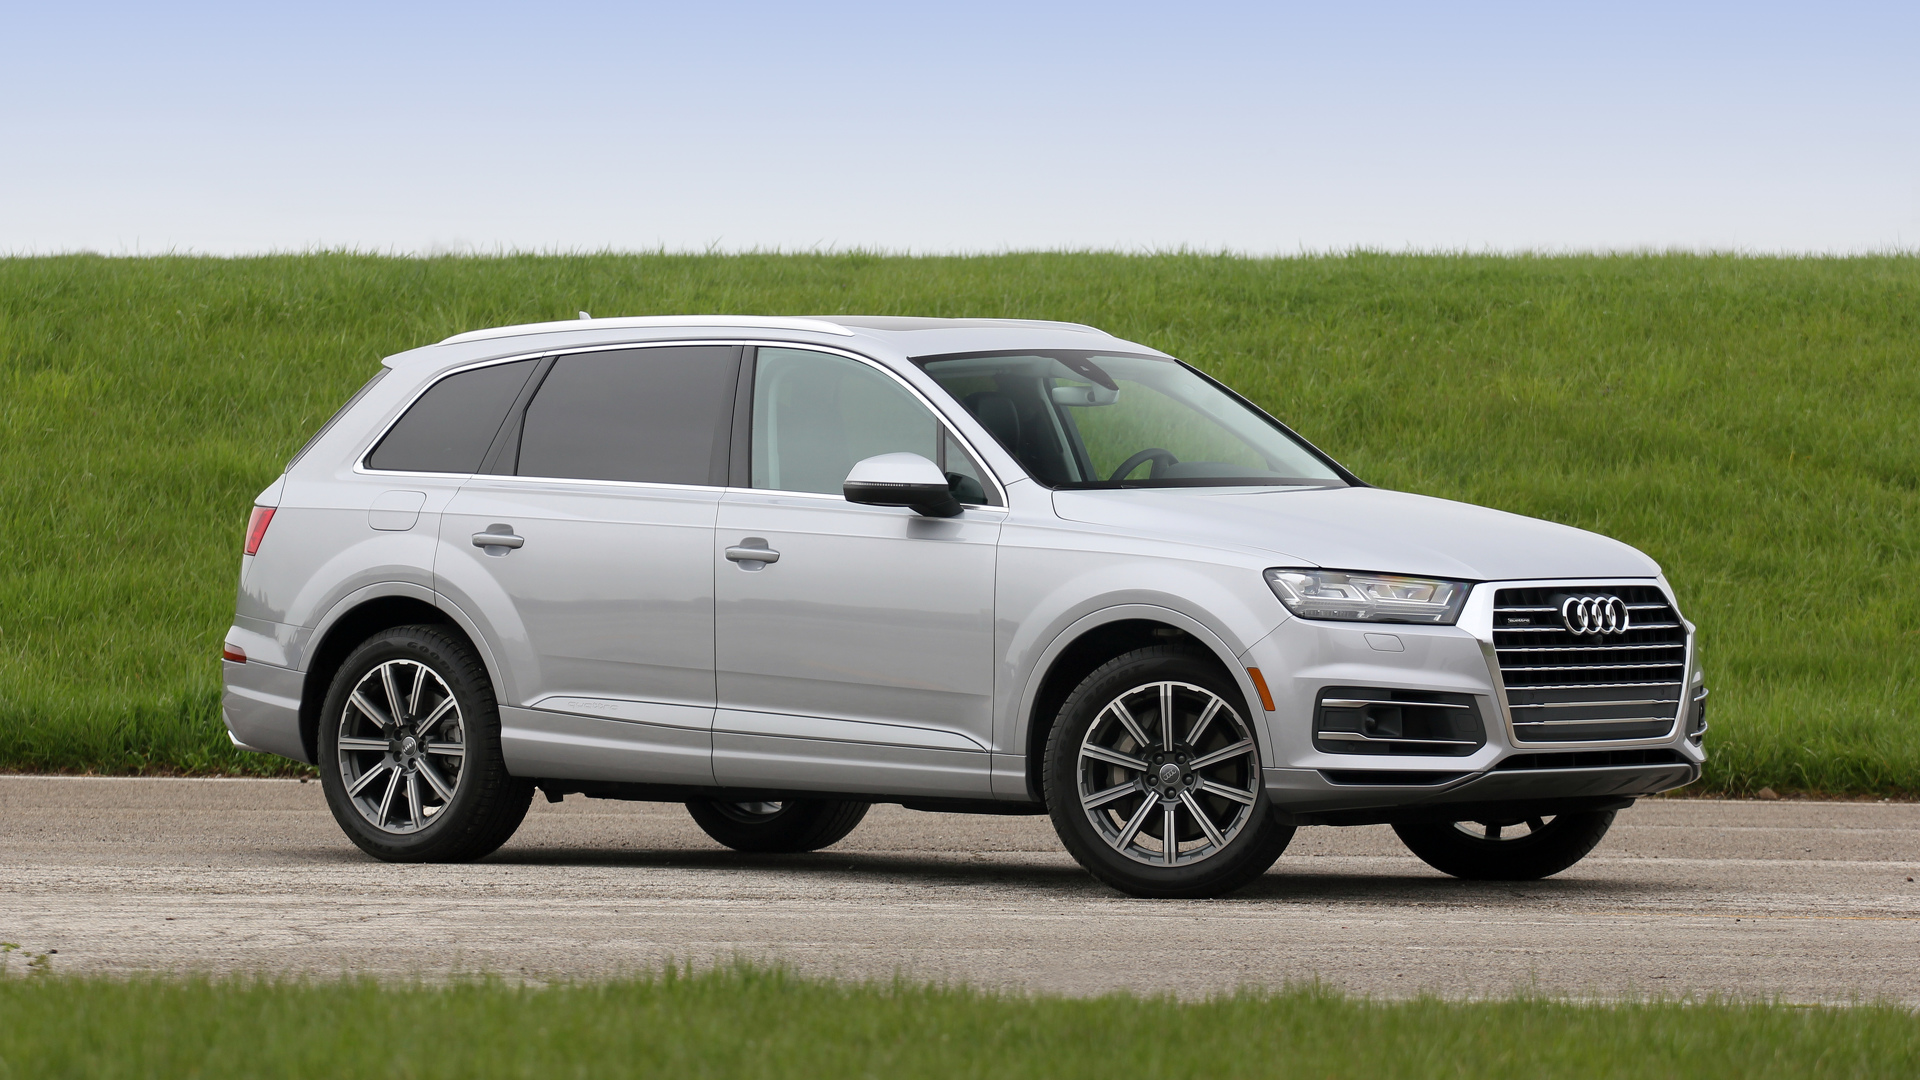 Audi Q7 News And Reviews